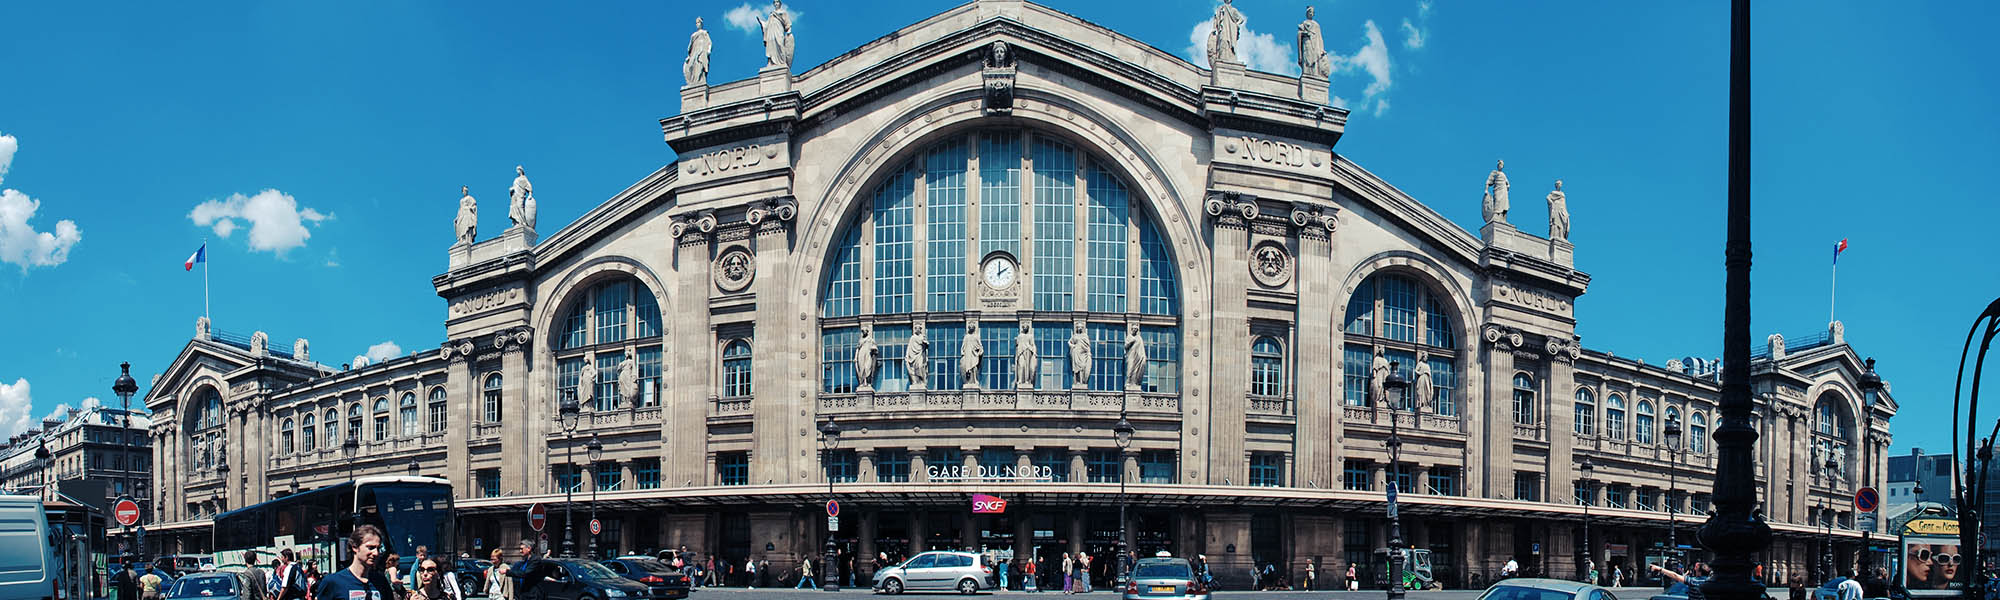 Rent a place in Gare du Nord